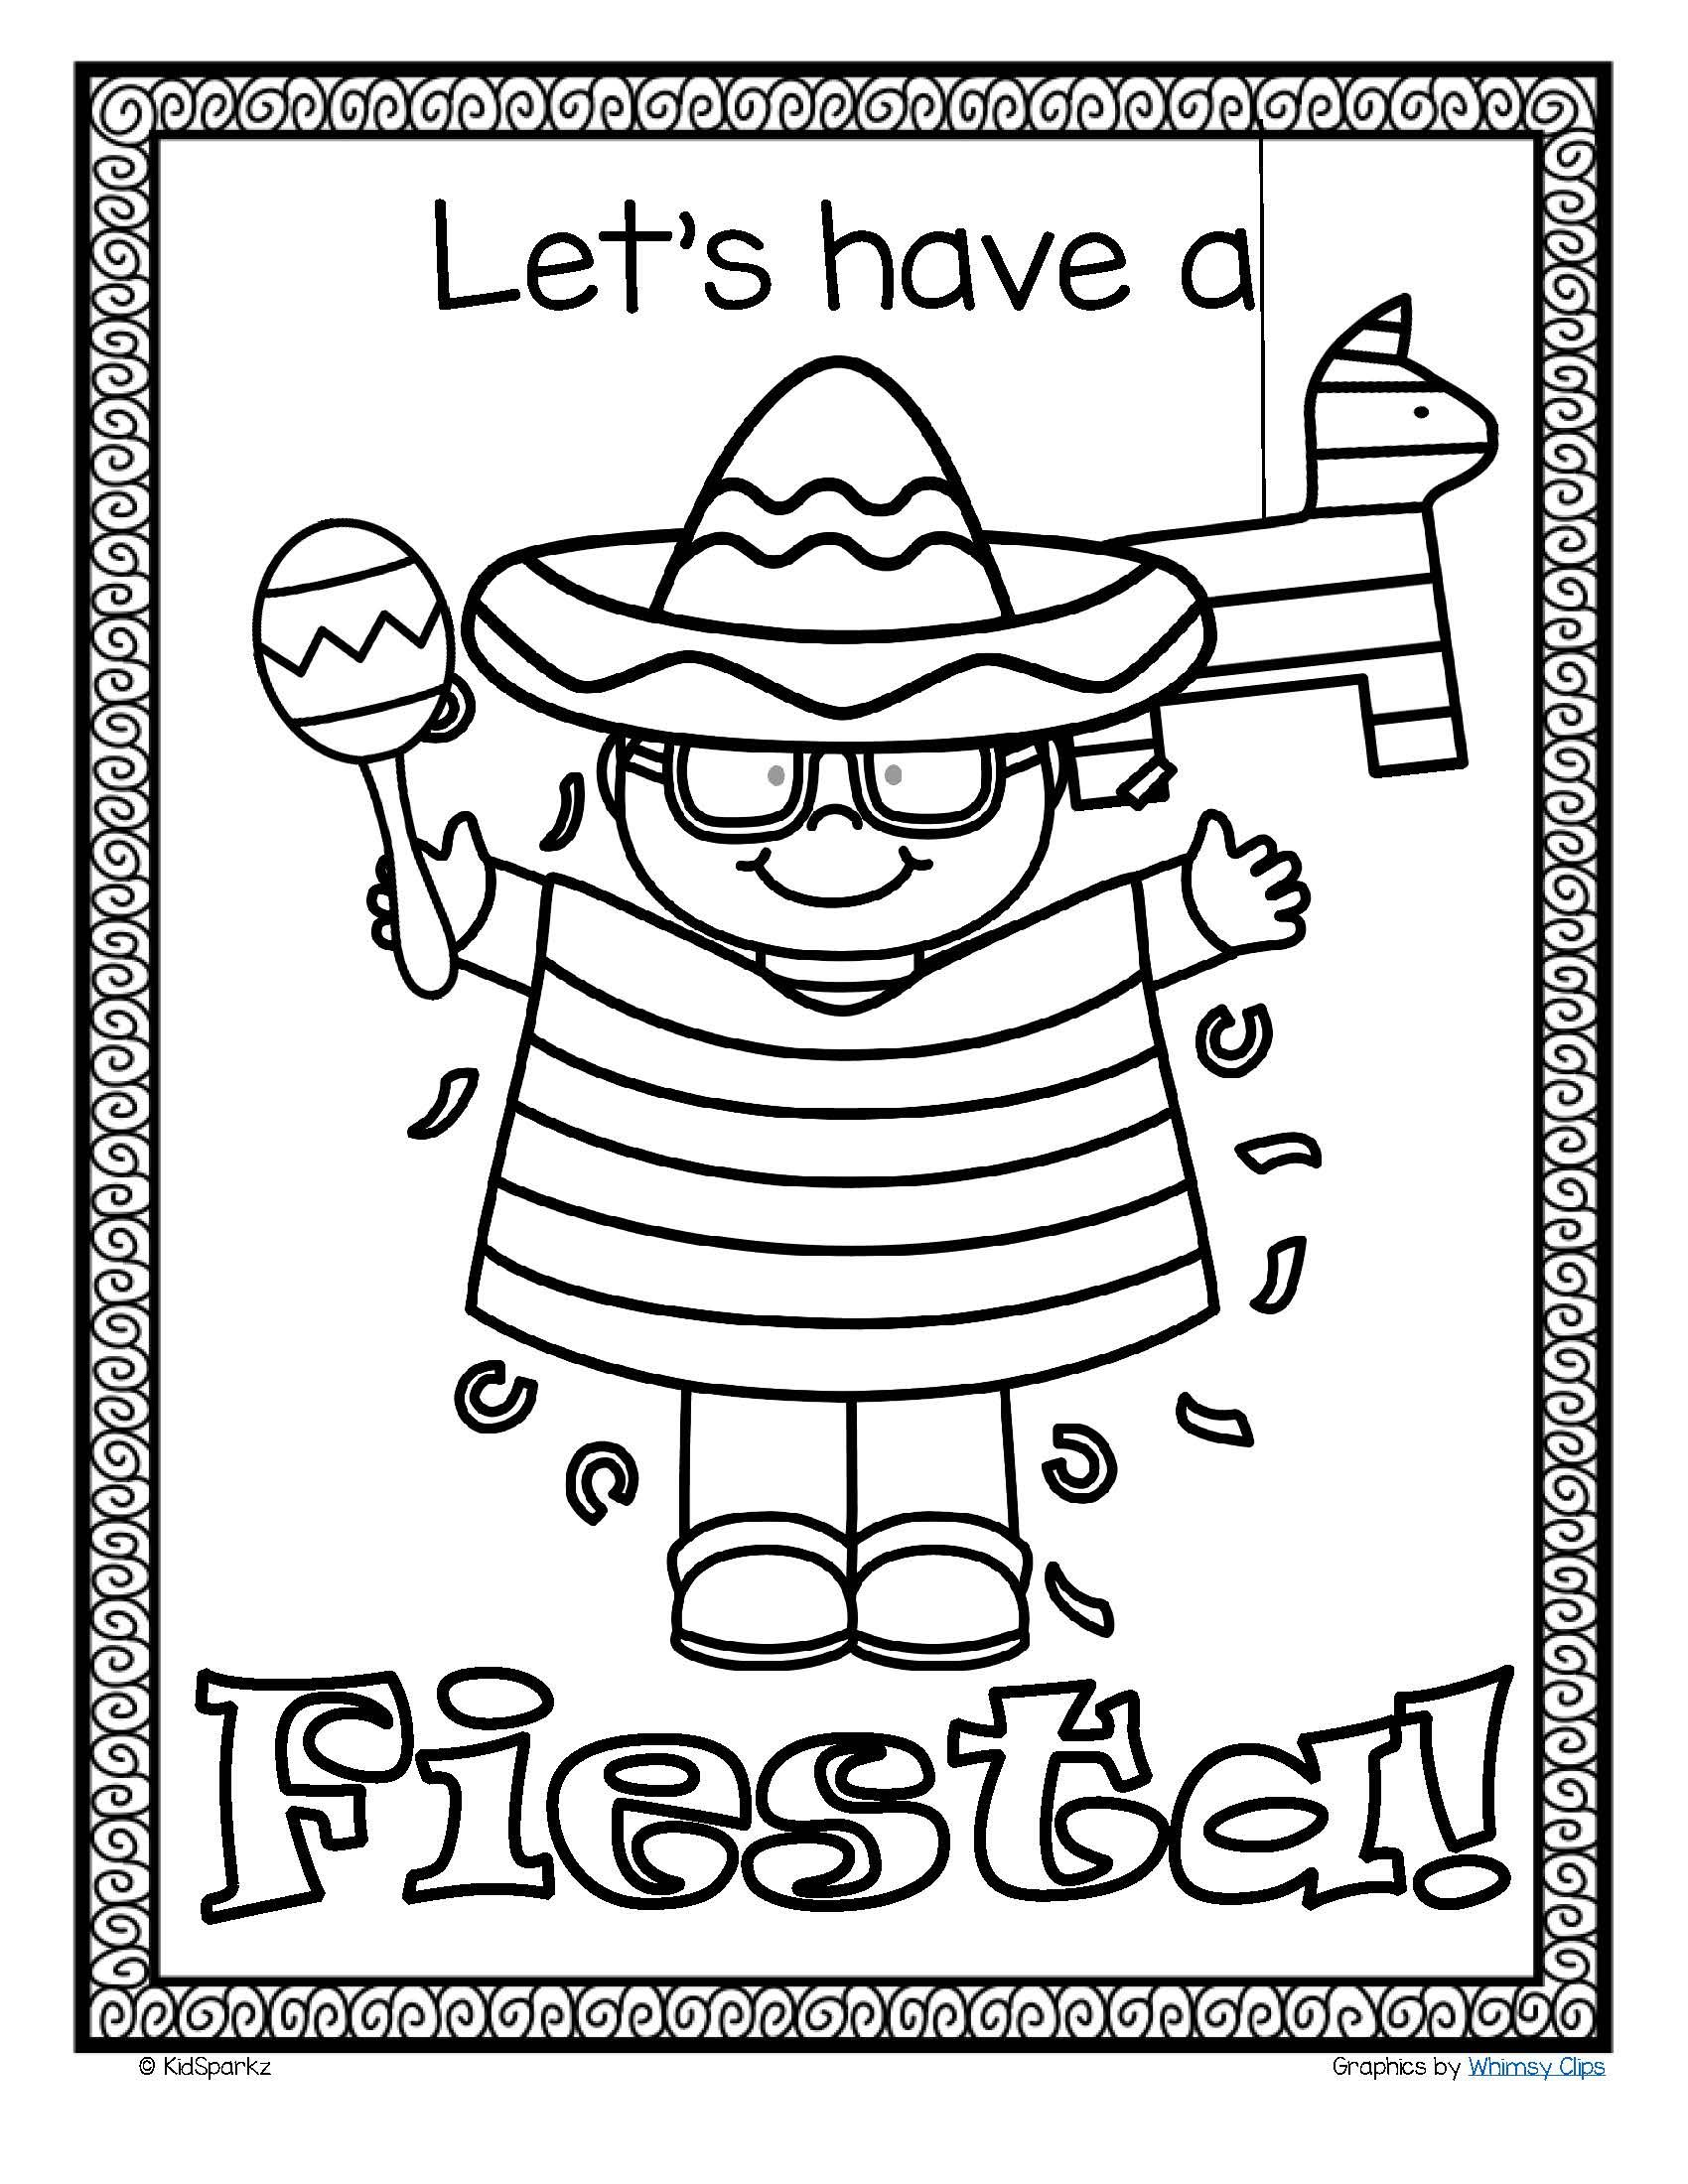 Free Cinco De Mayo Or Fiesta Poster In B W